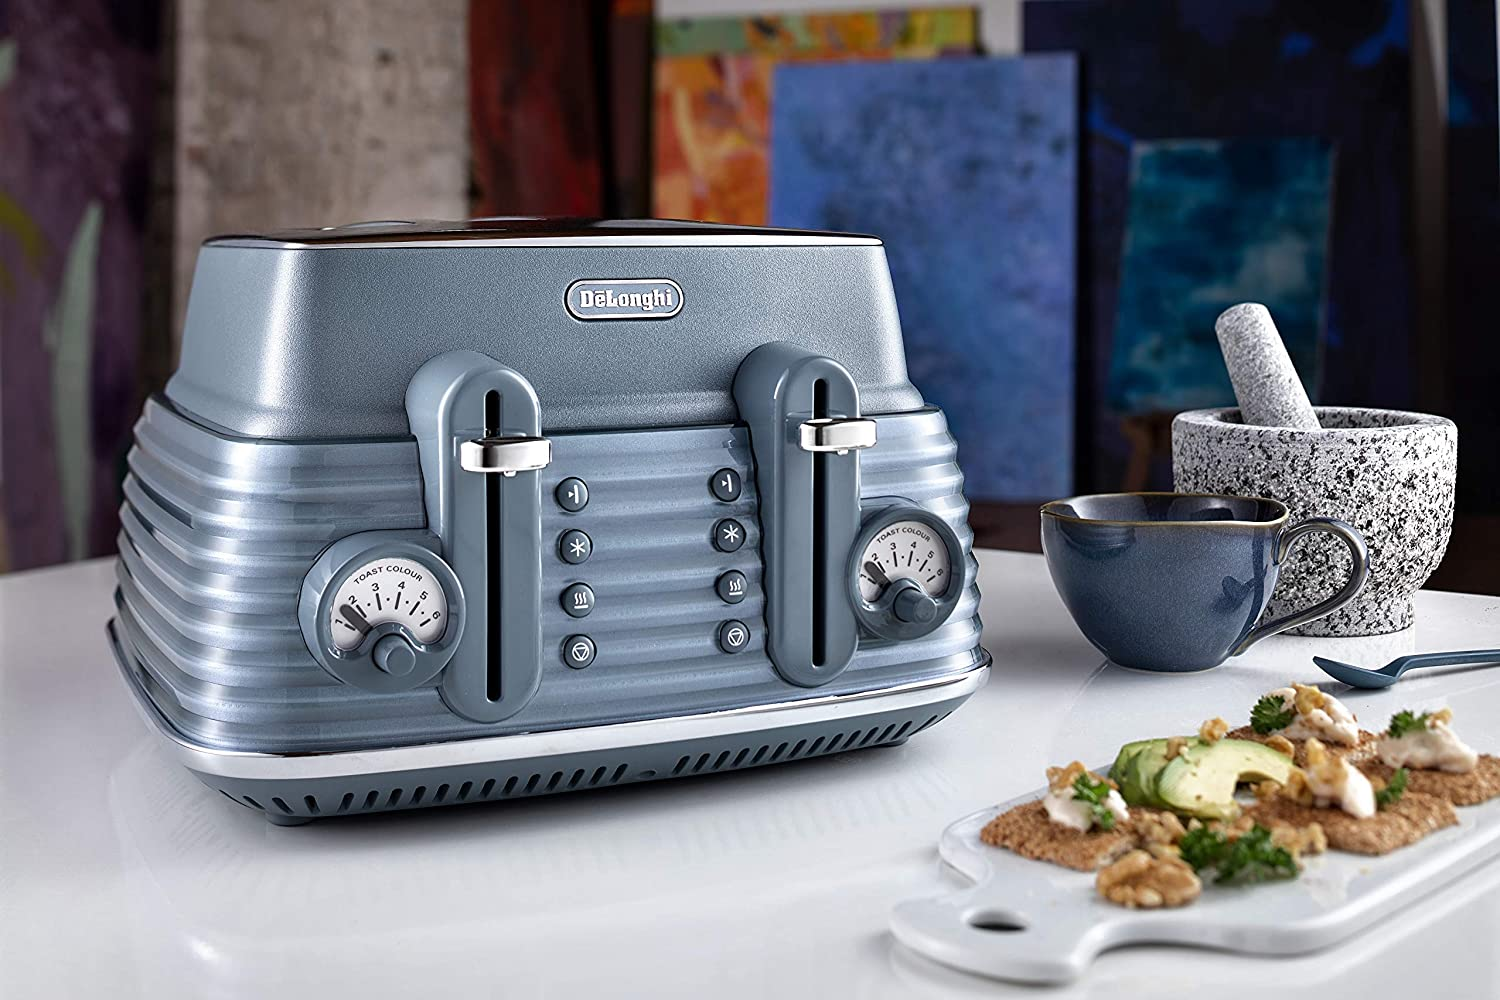 De'Longhi Scolpito 4 slot toaster, reheat, defrost, one-side bagel & 6 browning settings, Stainless steel, CTZS4003.BG, Clay beige Mineral Blue